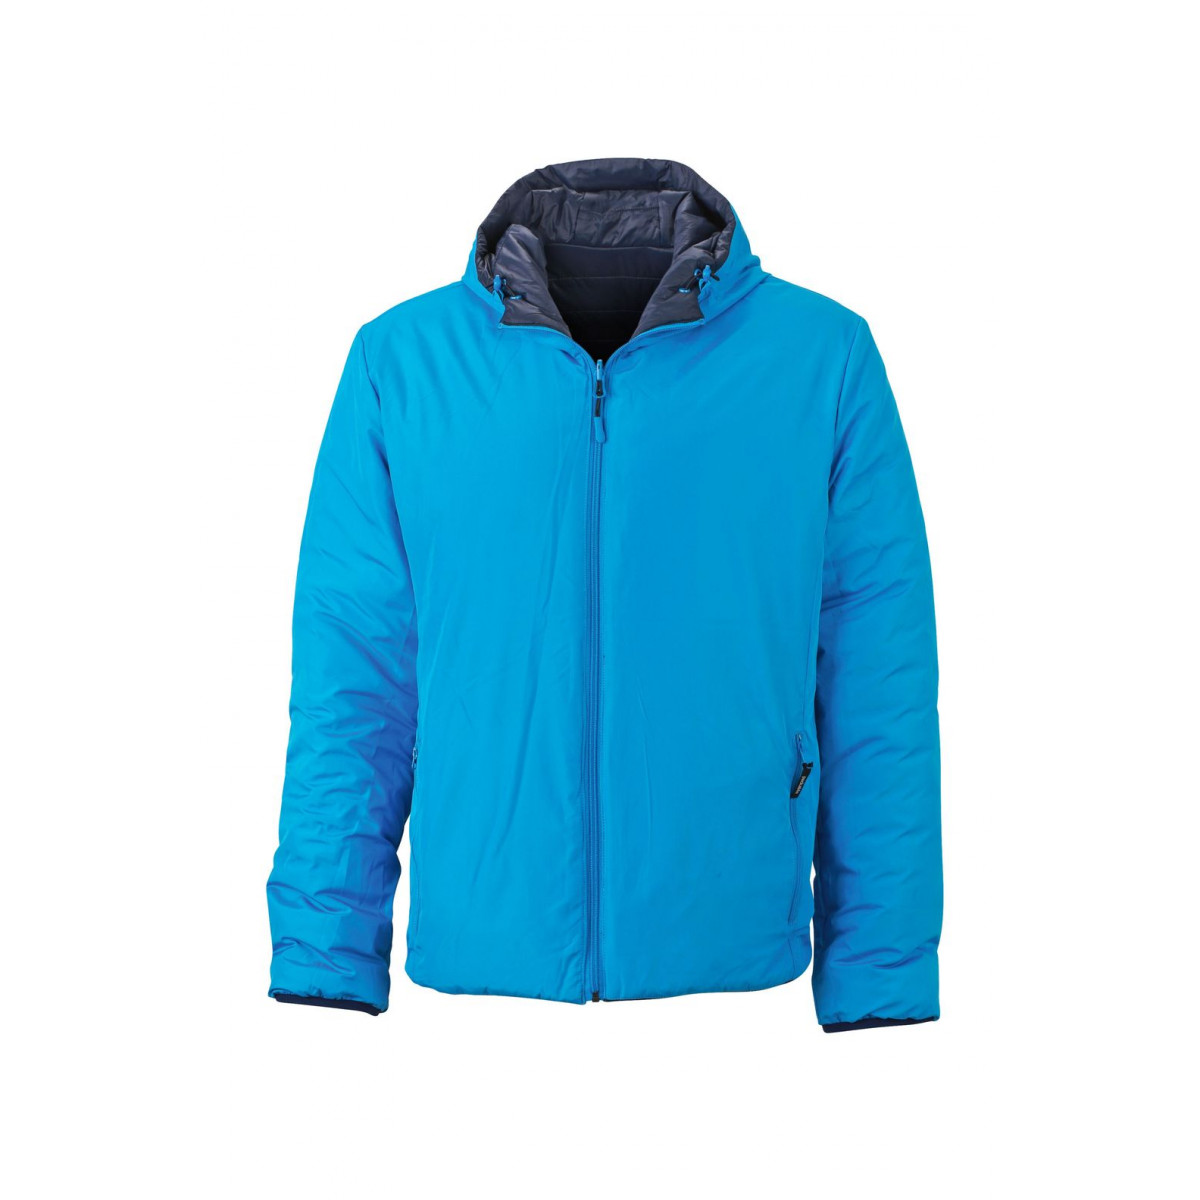 Куртка мужская JN1092 Mens Lightweight Jacket - Темно-синий/Аква